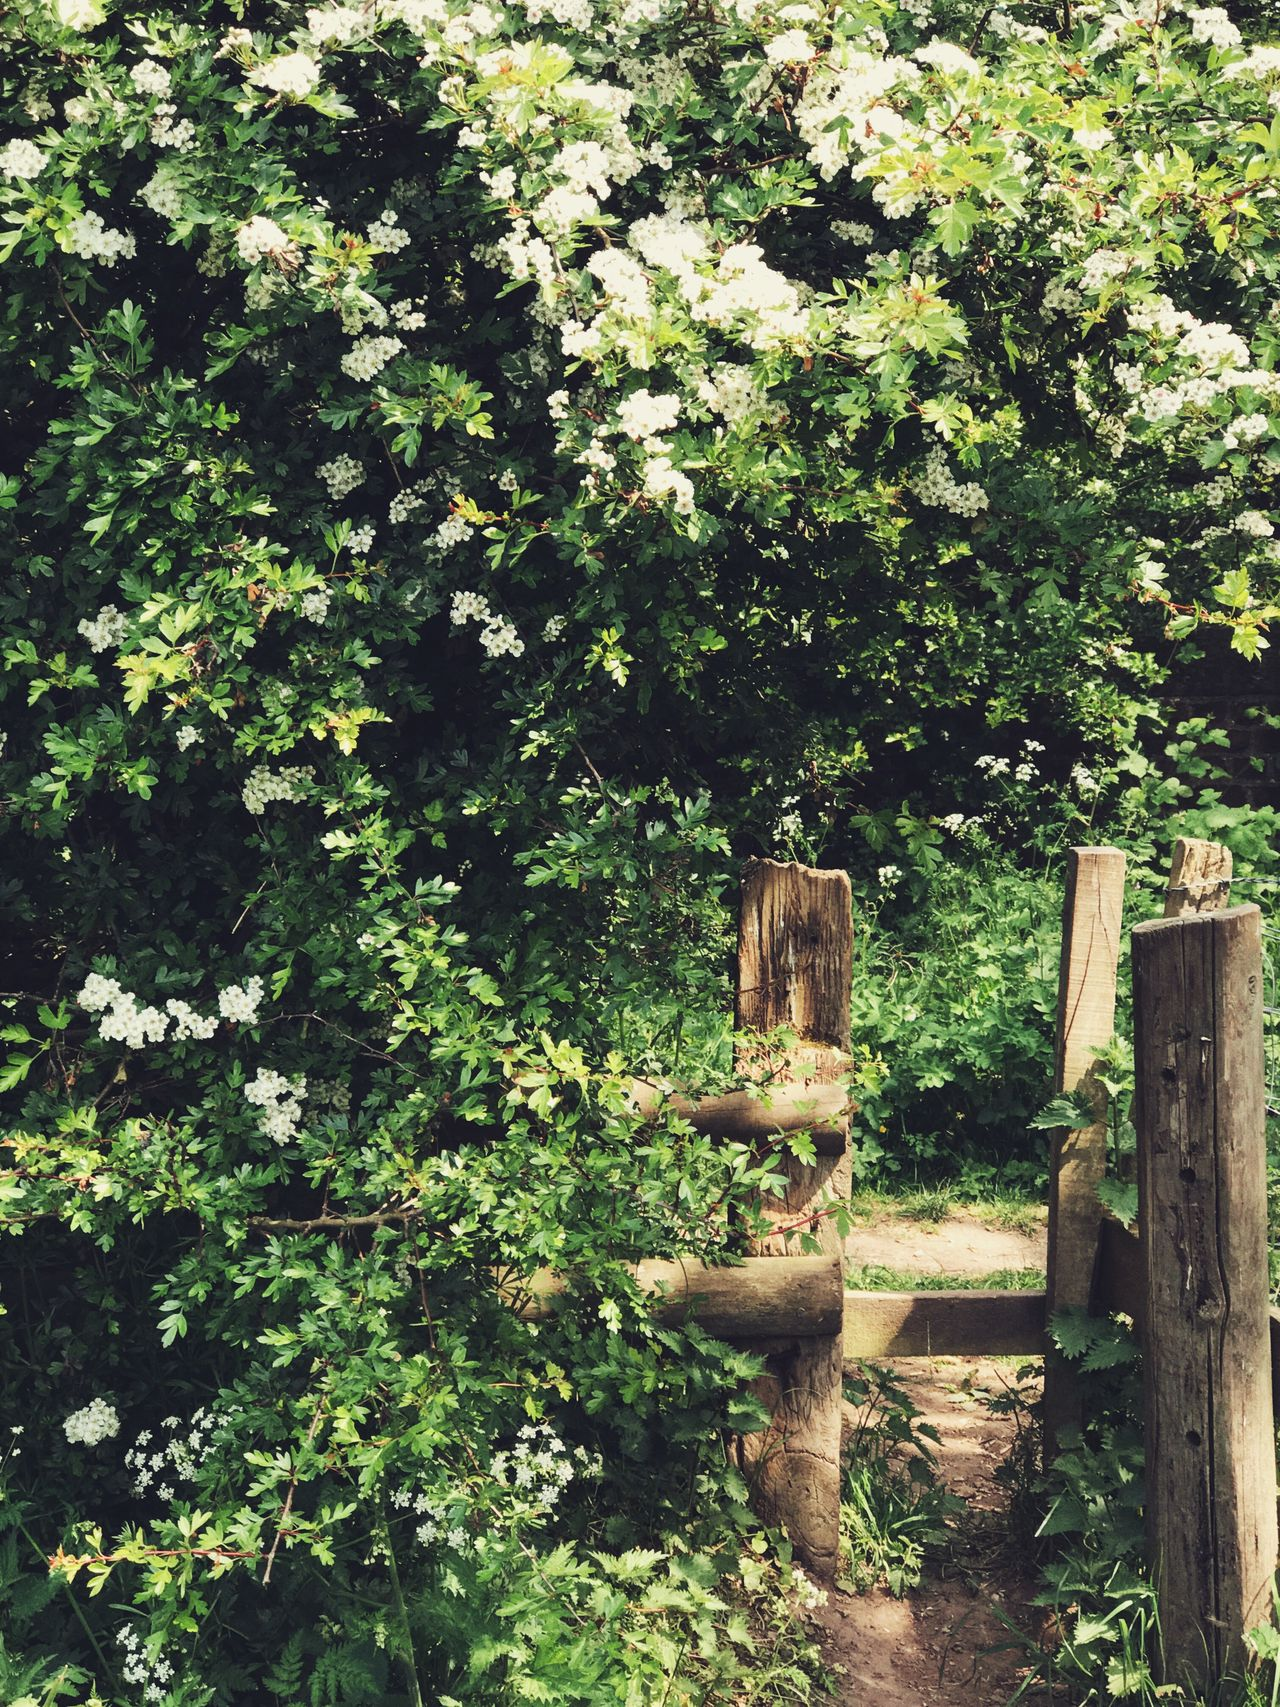 'Careful, you have to duck under the hawthorn as you step over stile.' Tree Nature No People Wood - Material Green Color Day Tranquility Growth Outdoors Beauty In Nature Stile Hawthorn Hawthorn Blossom